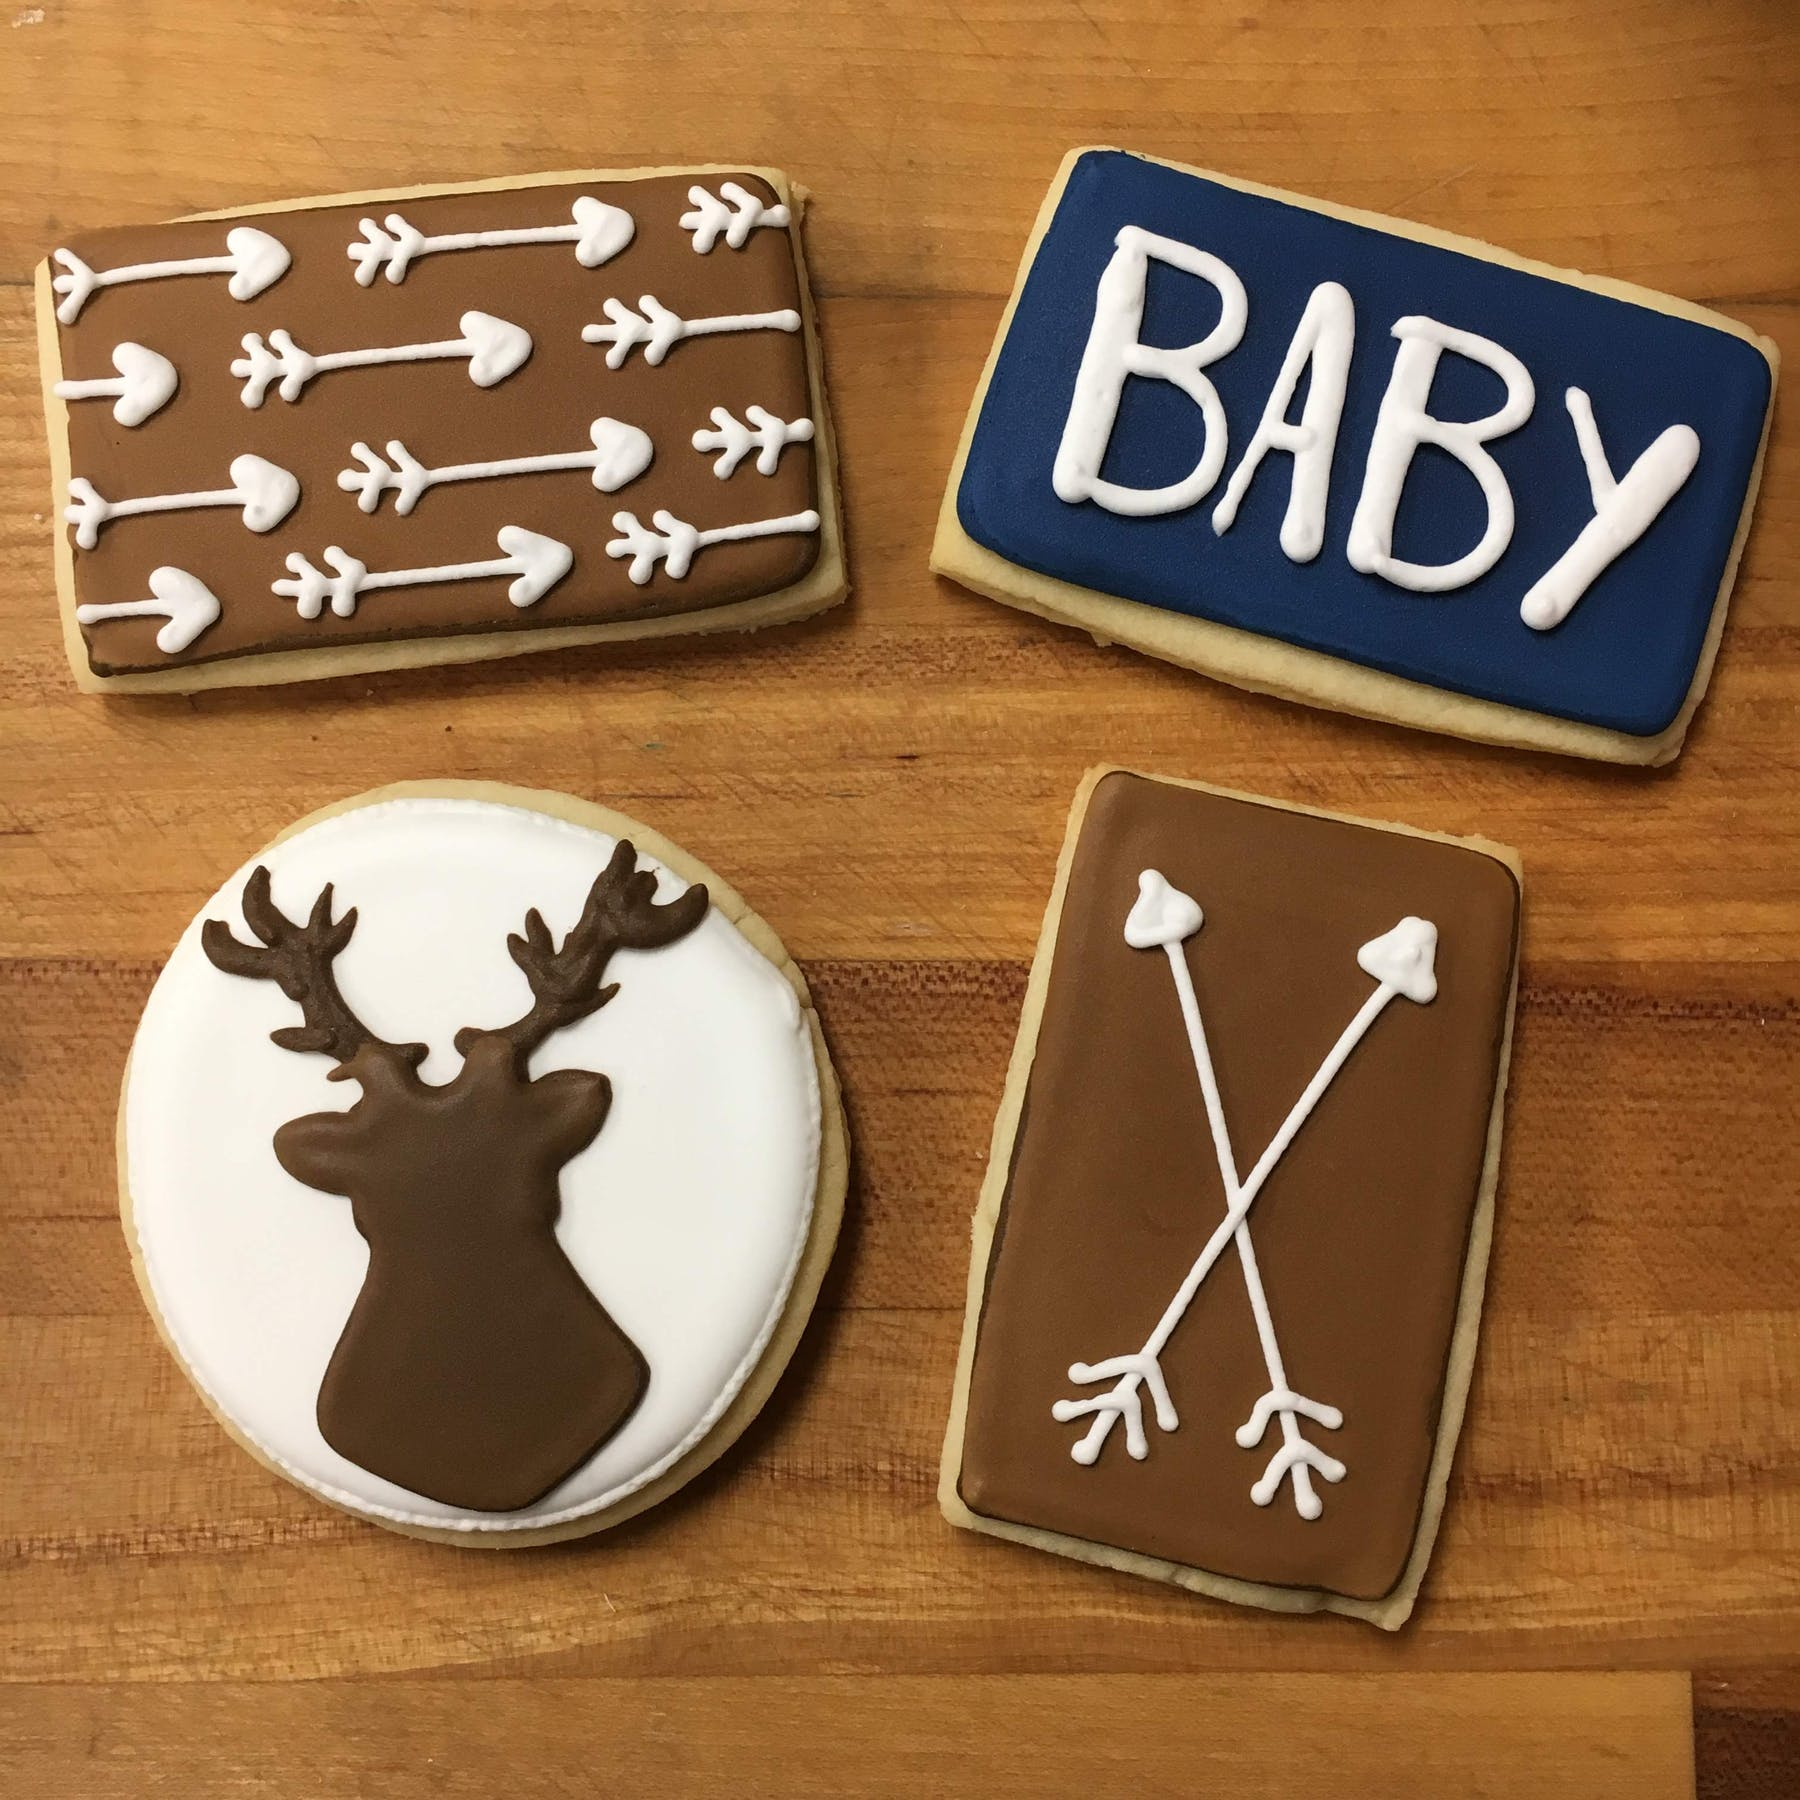 multiple decorated cookies